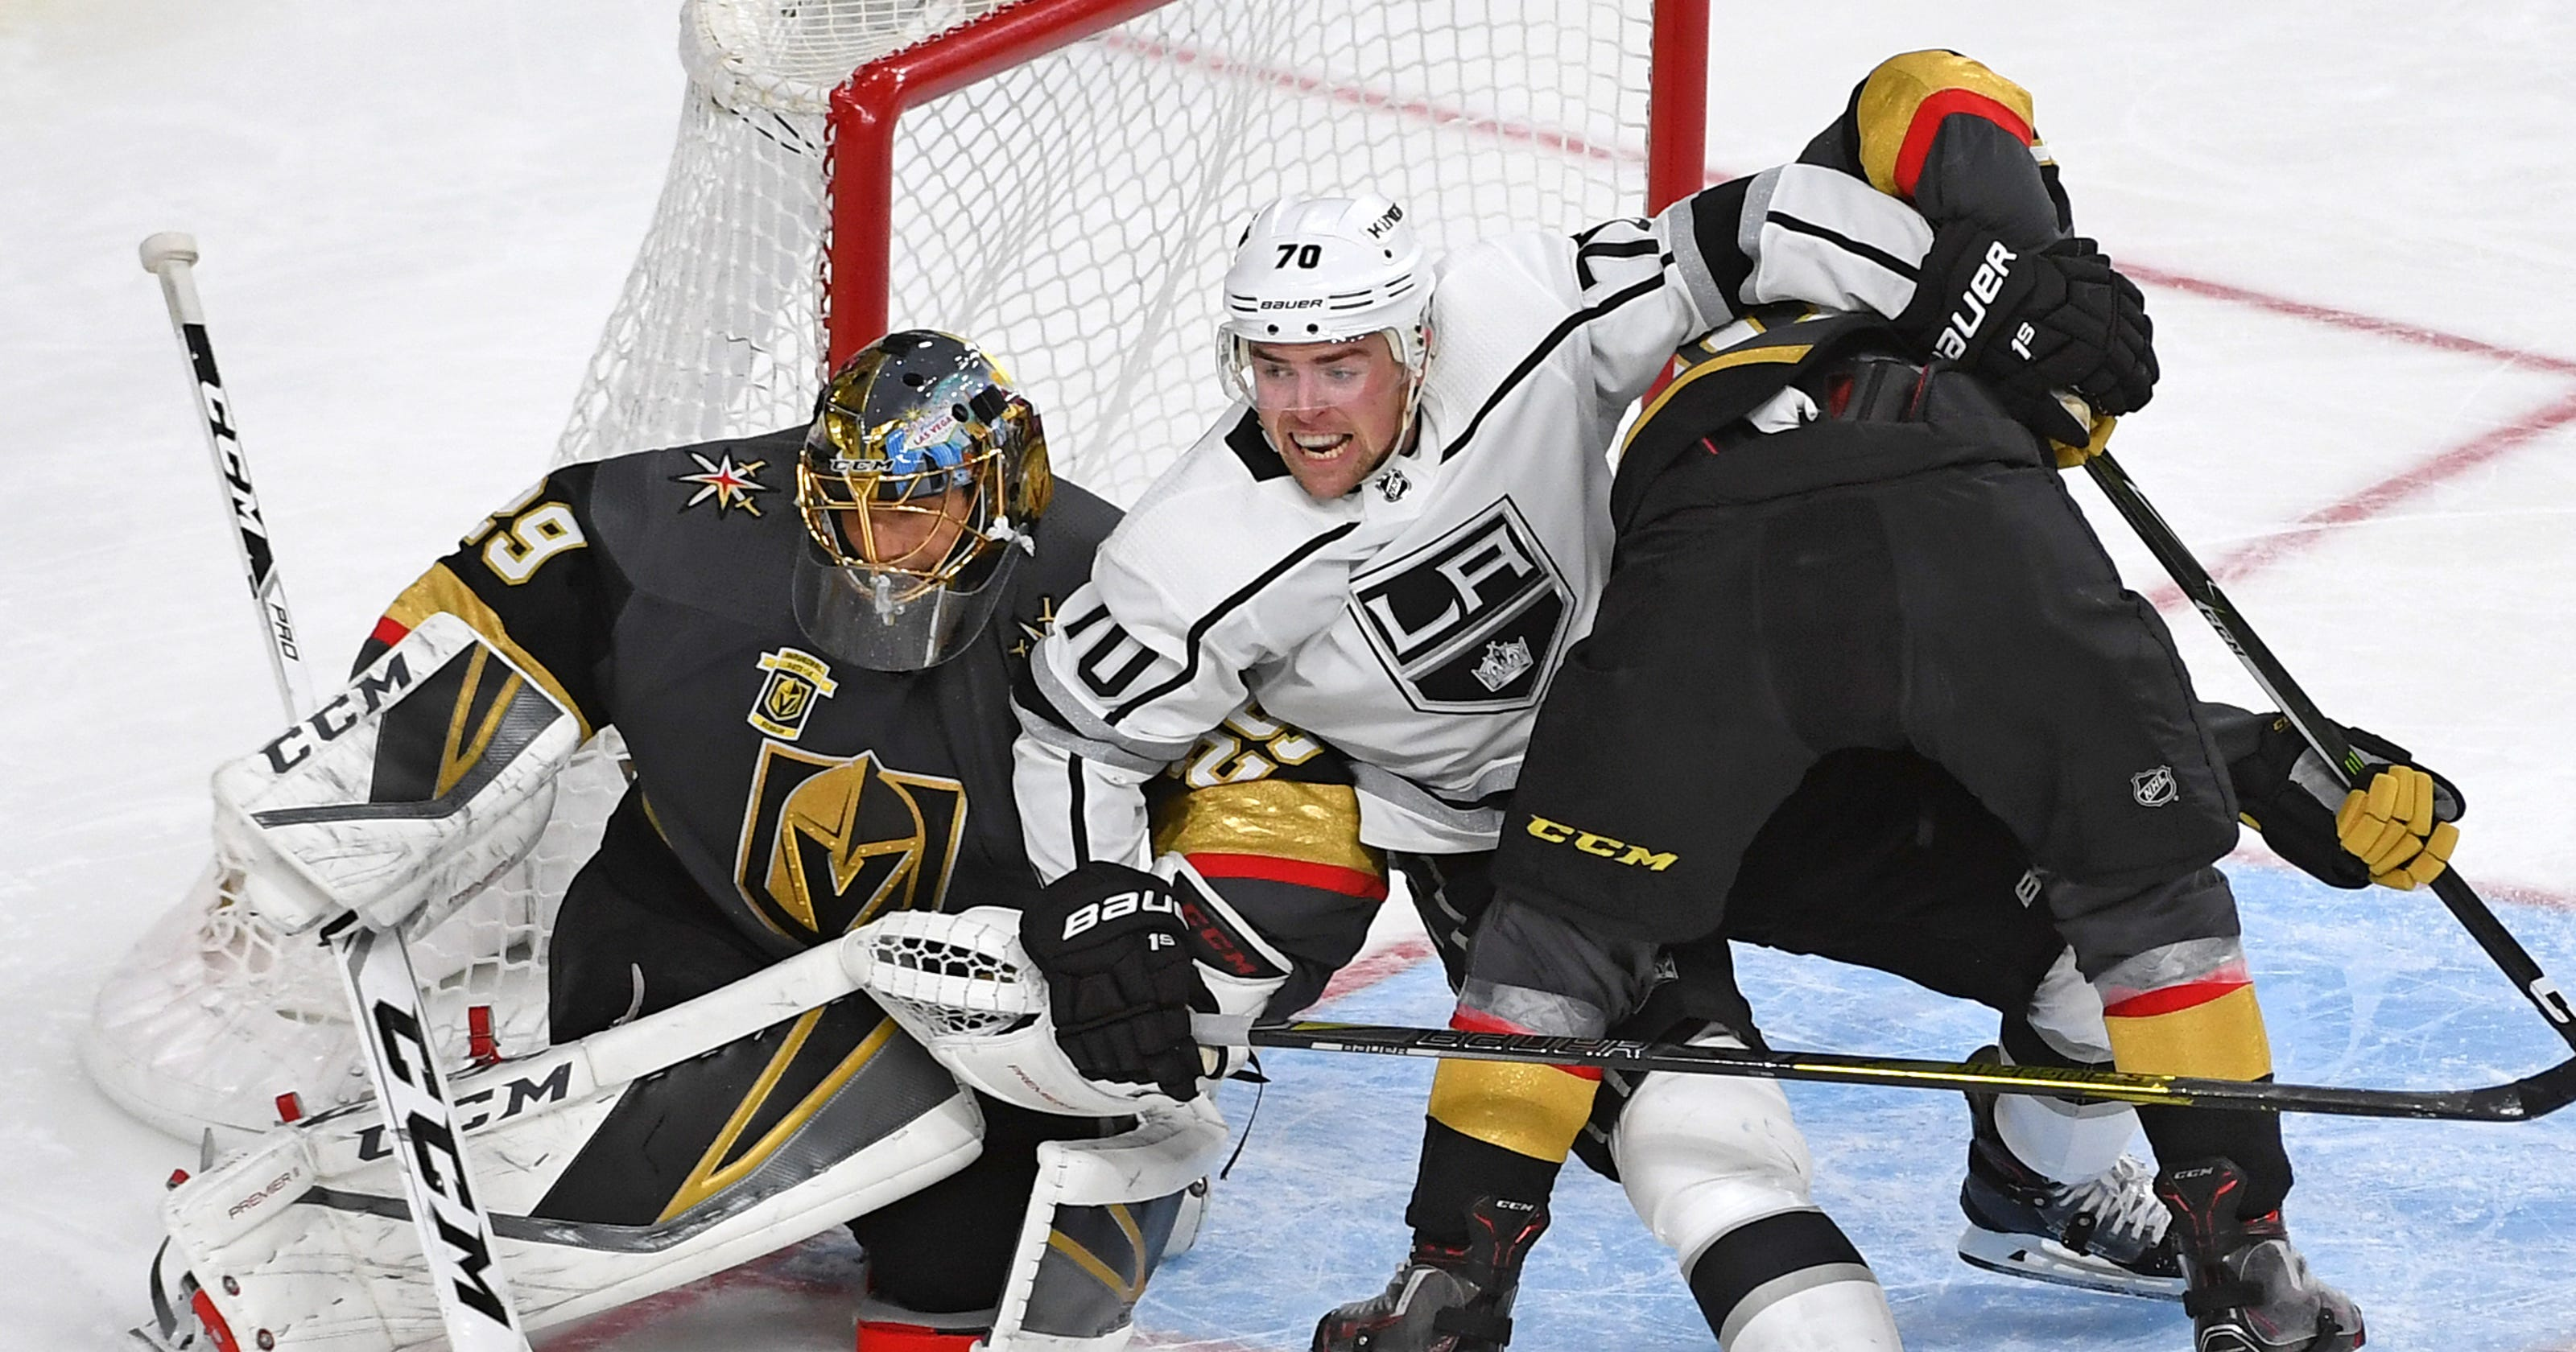 ae73c2b8c Golden Knights beat Kings to move one win away from more history